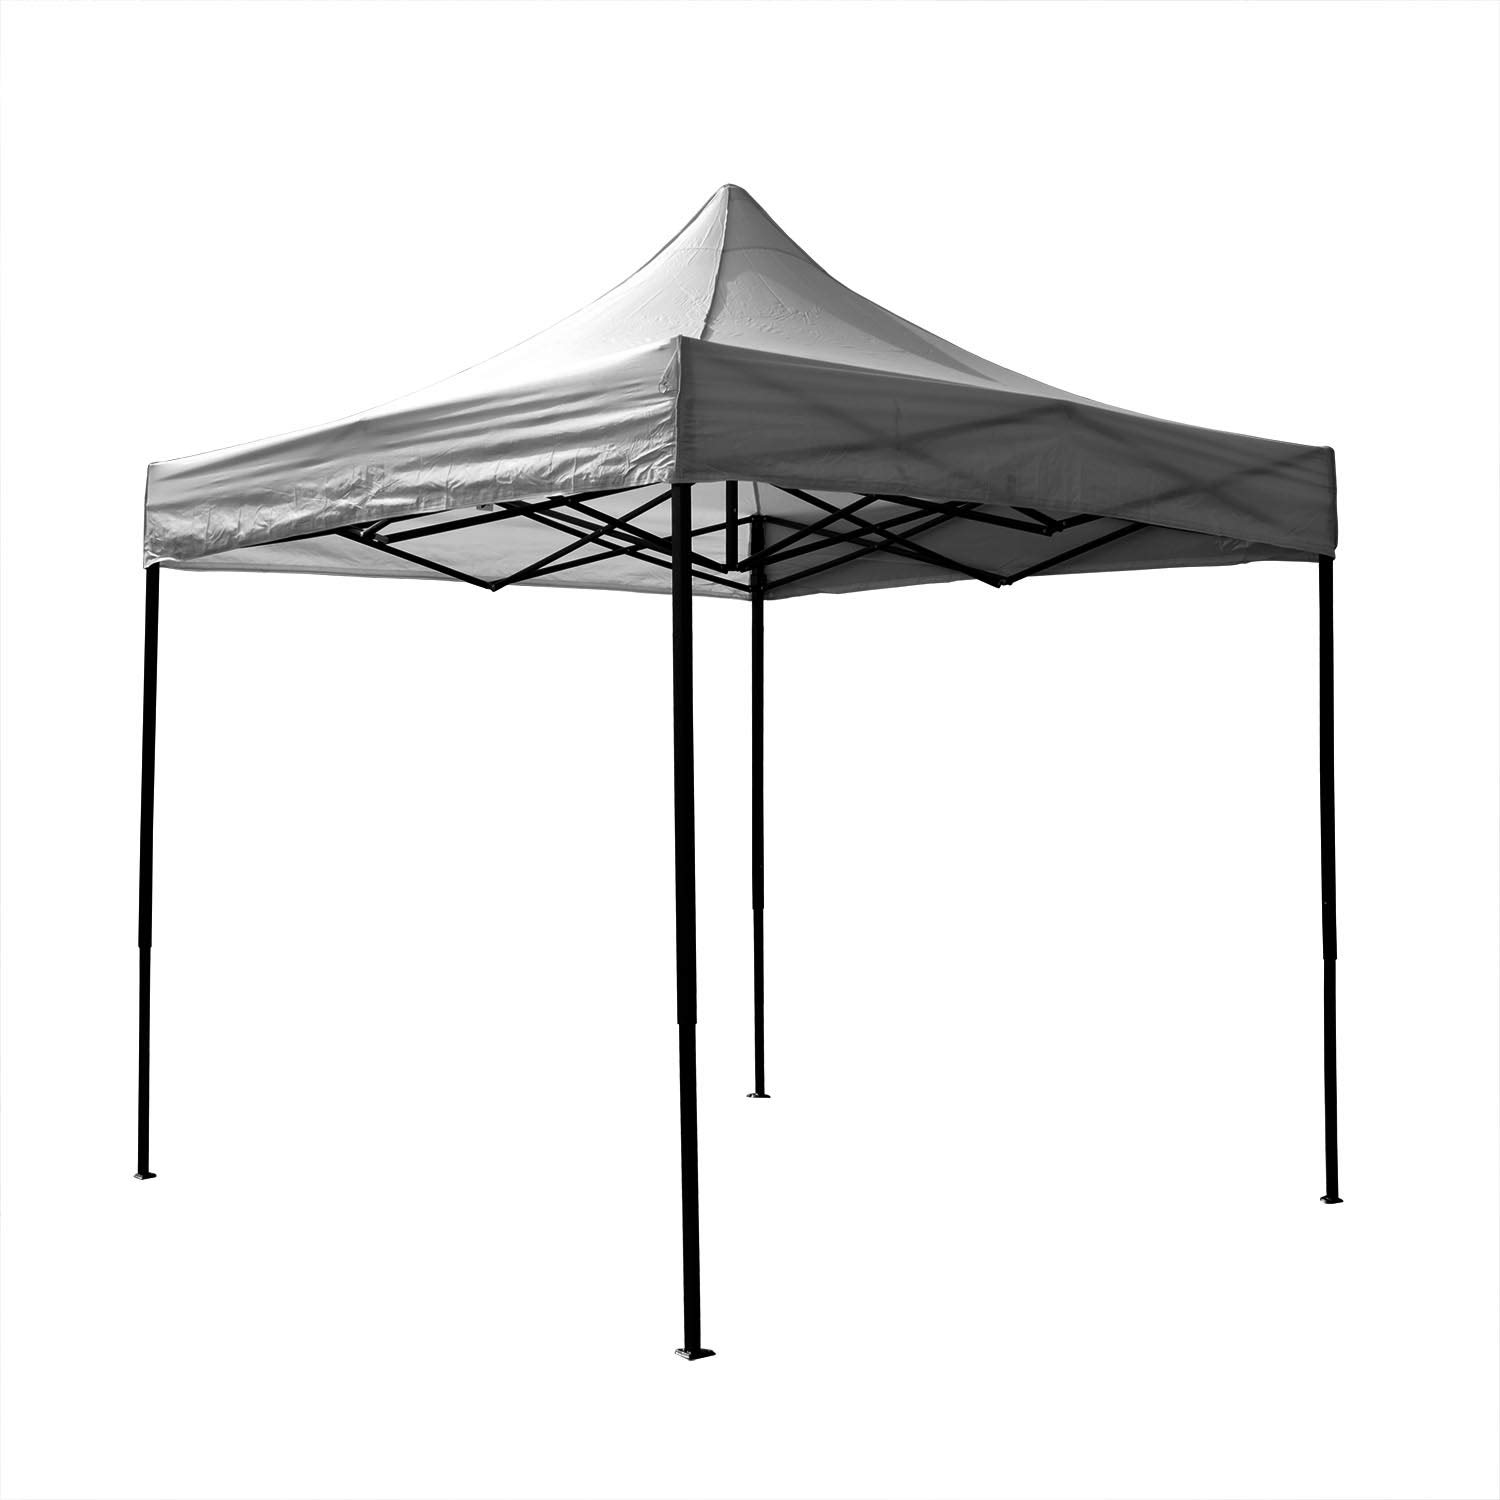 Frame /& Canopy Shelter Marquee Tent Dark Green Yaheetech 3x3m Waterproof Uv protection Pop Up Gazebo Party Tent